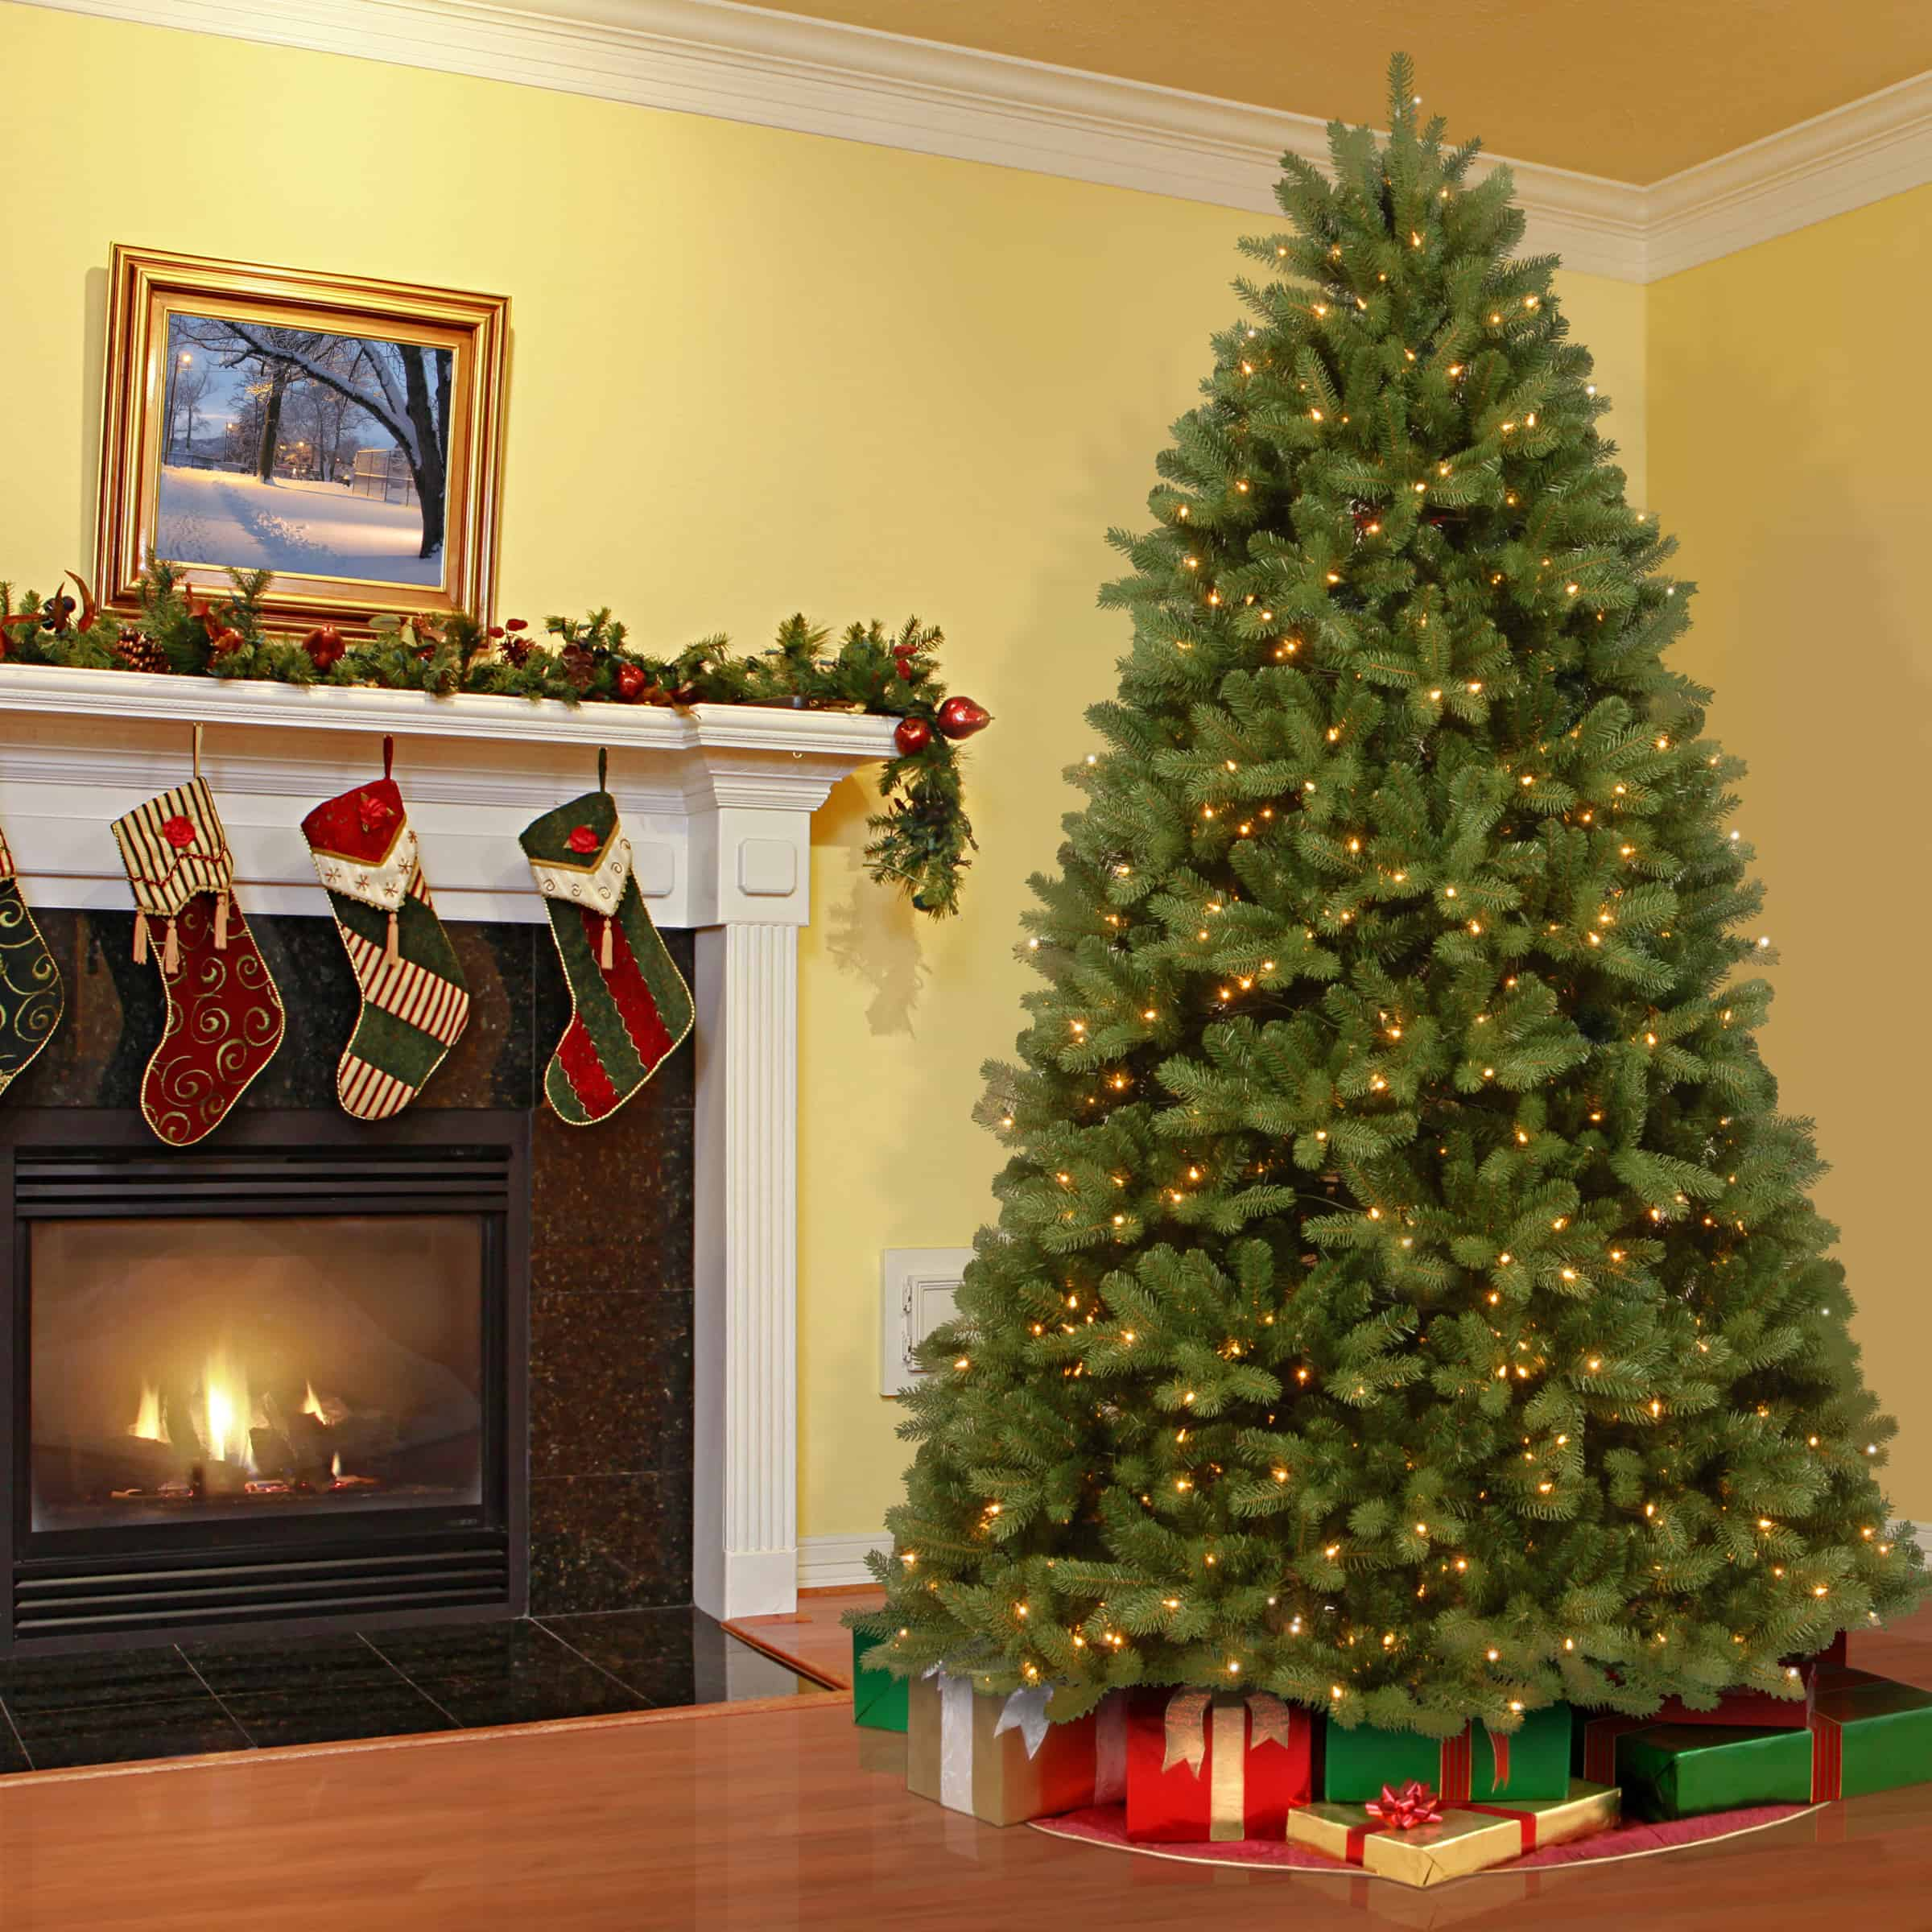 12ft Newberry Spruce Artificial Christmas Tree With LED Lights